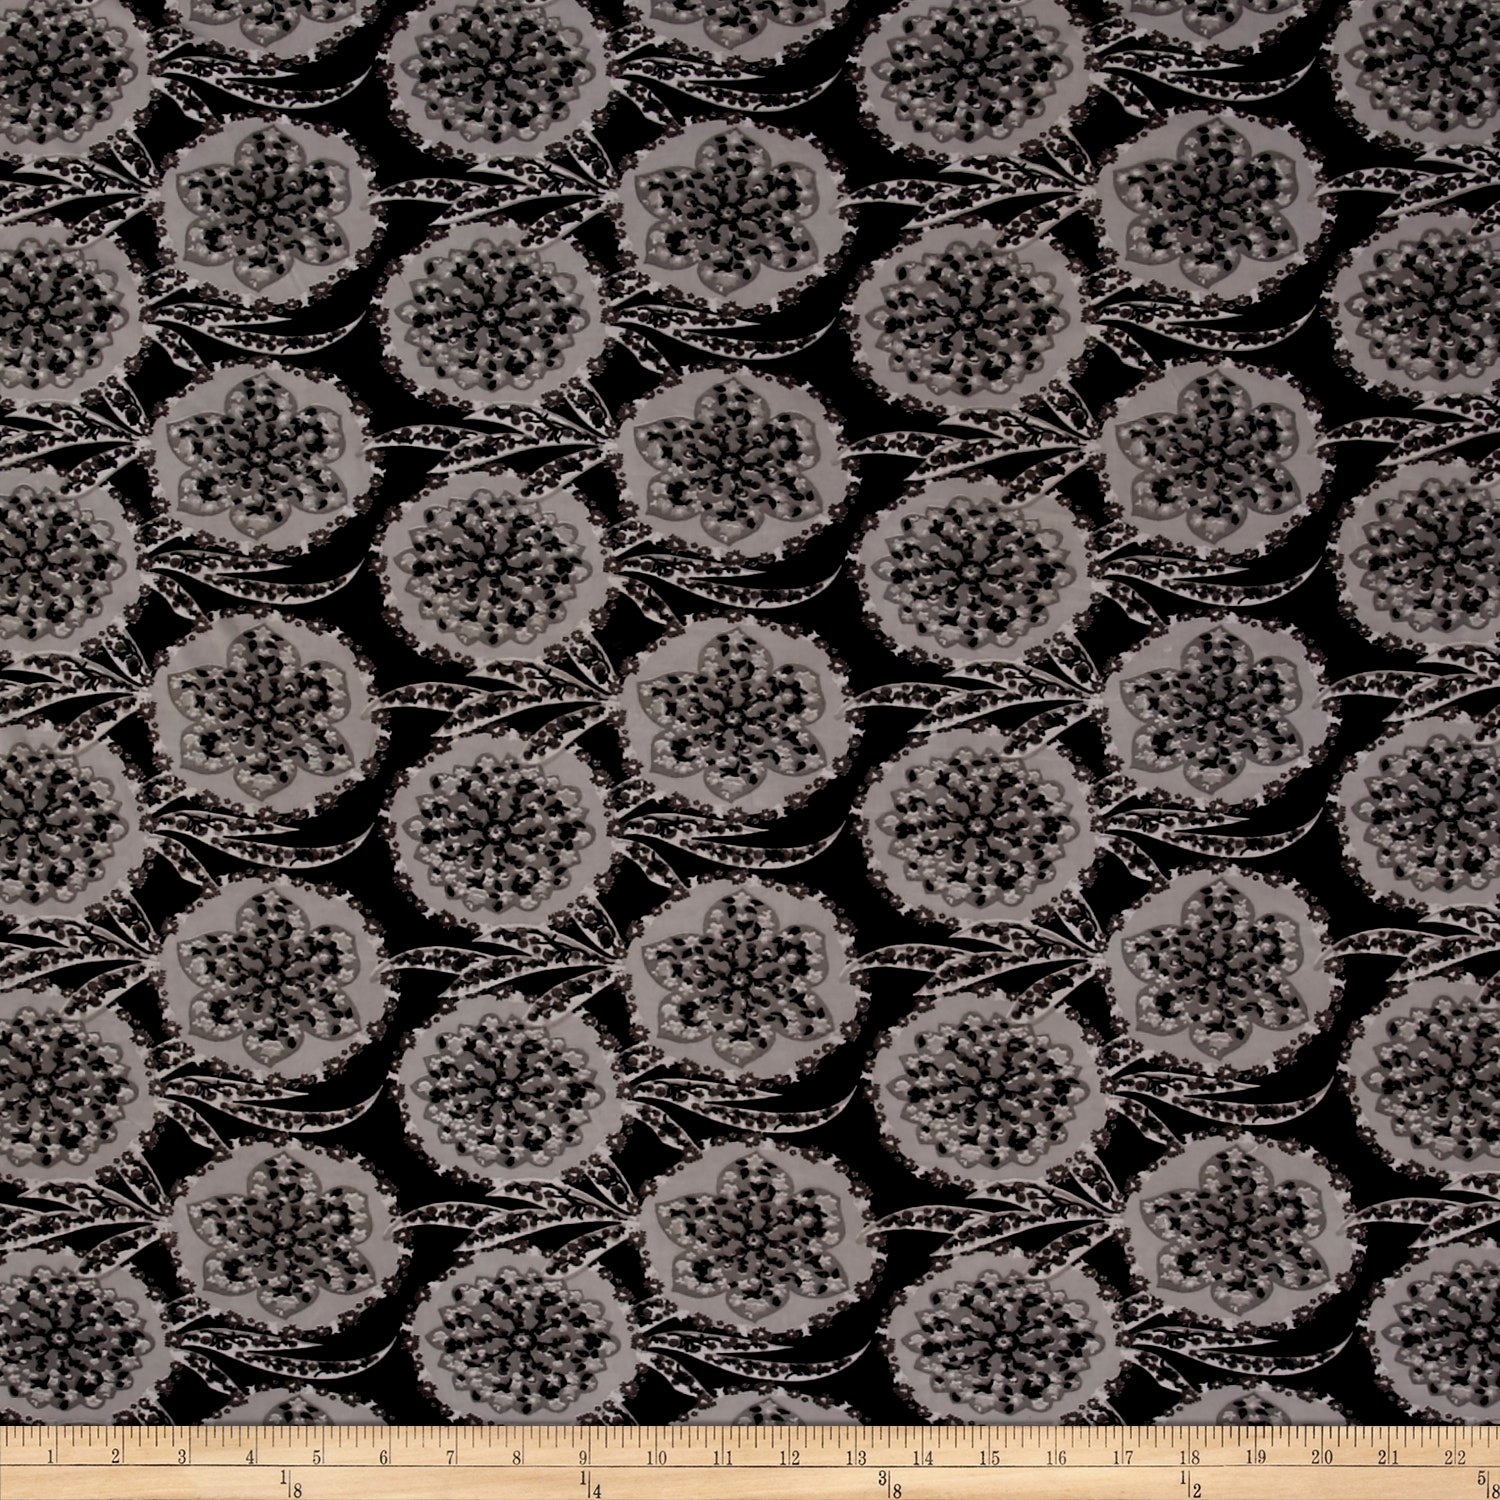 98174d81fa4 Amazon.com: Fabric ITY Stretch Jersey Knit Medallion Floral Charcoal/Grey/Black  Yard